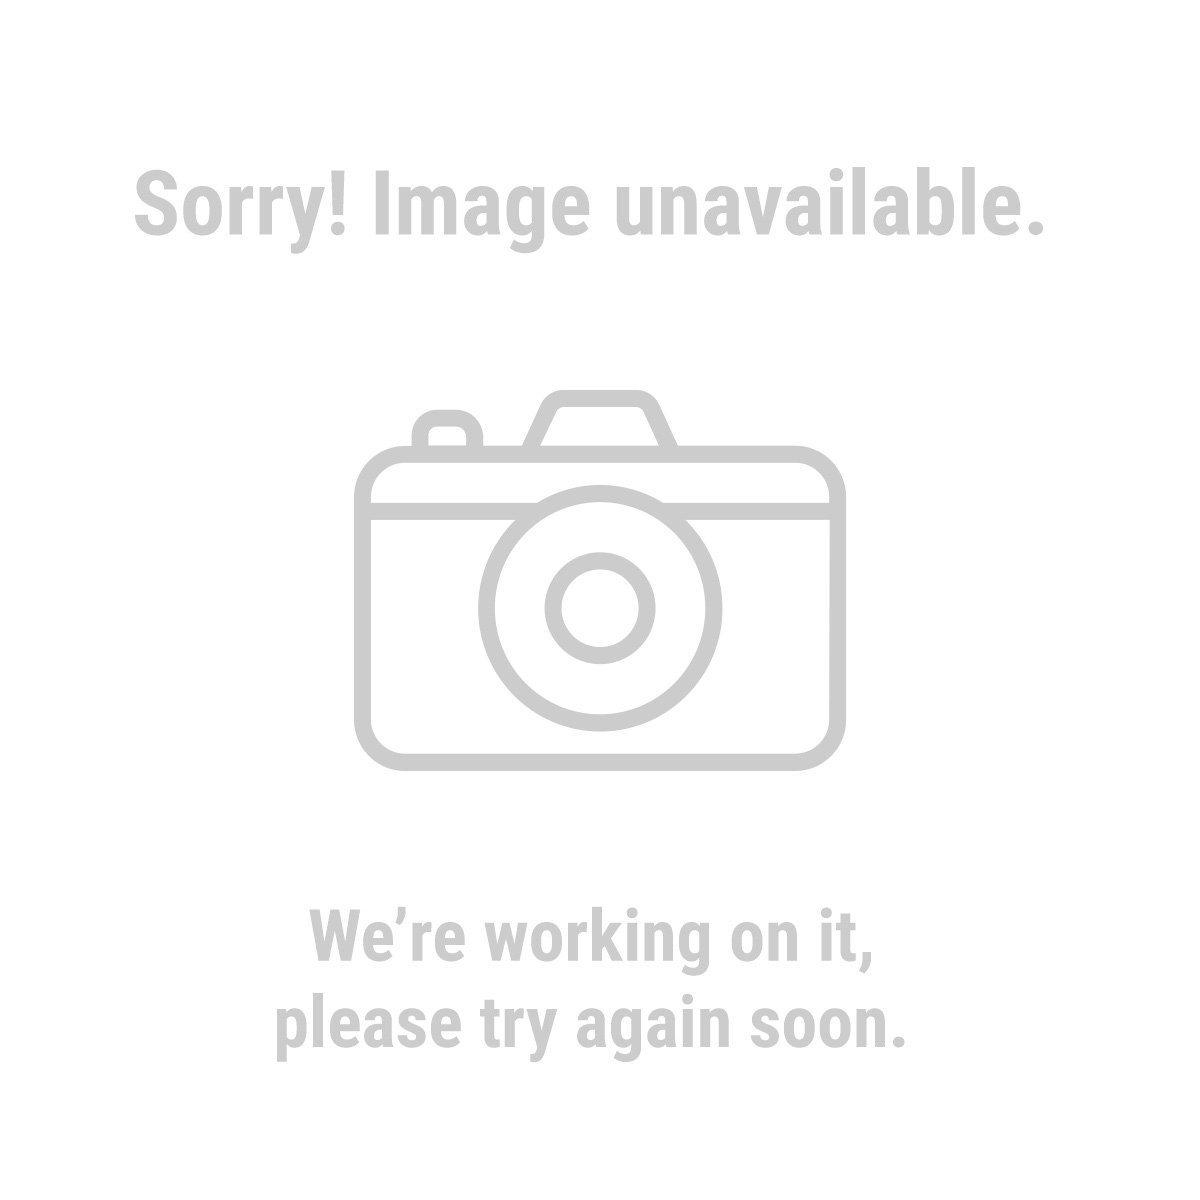 Bike Racks For Trucks Hitch Bike Hitch Mount Bike Rack